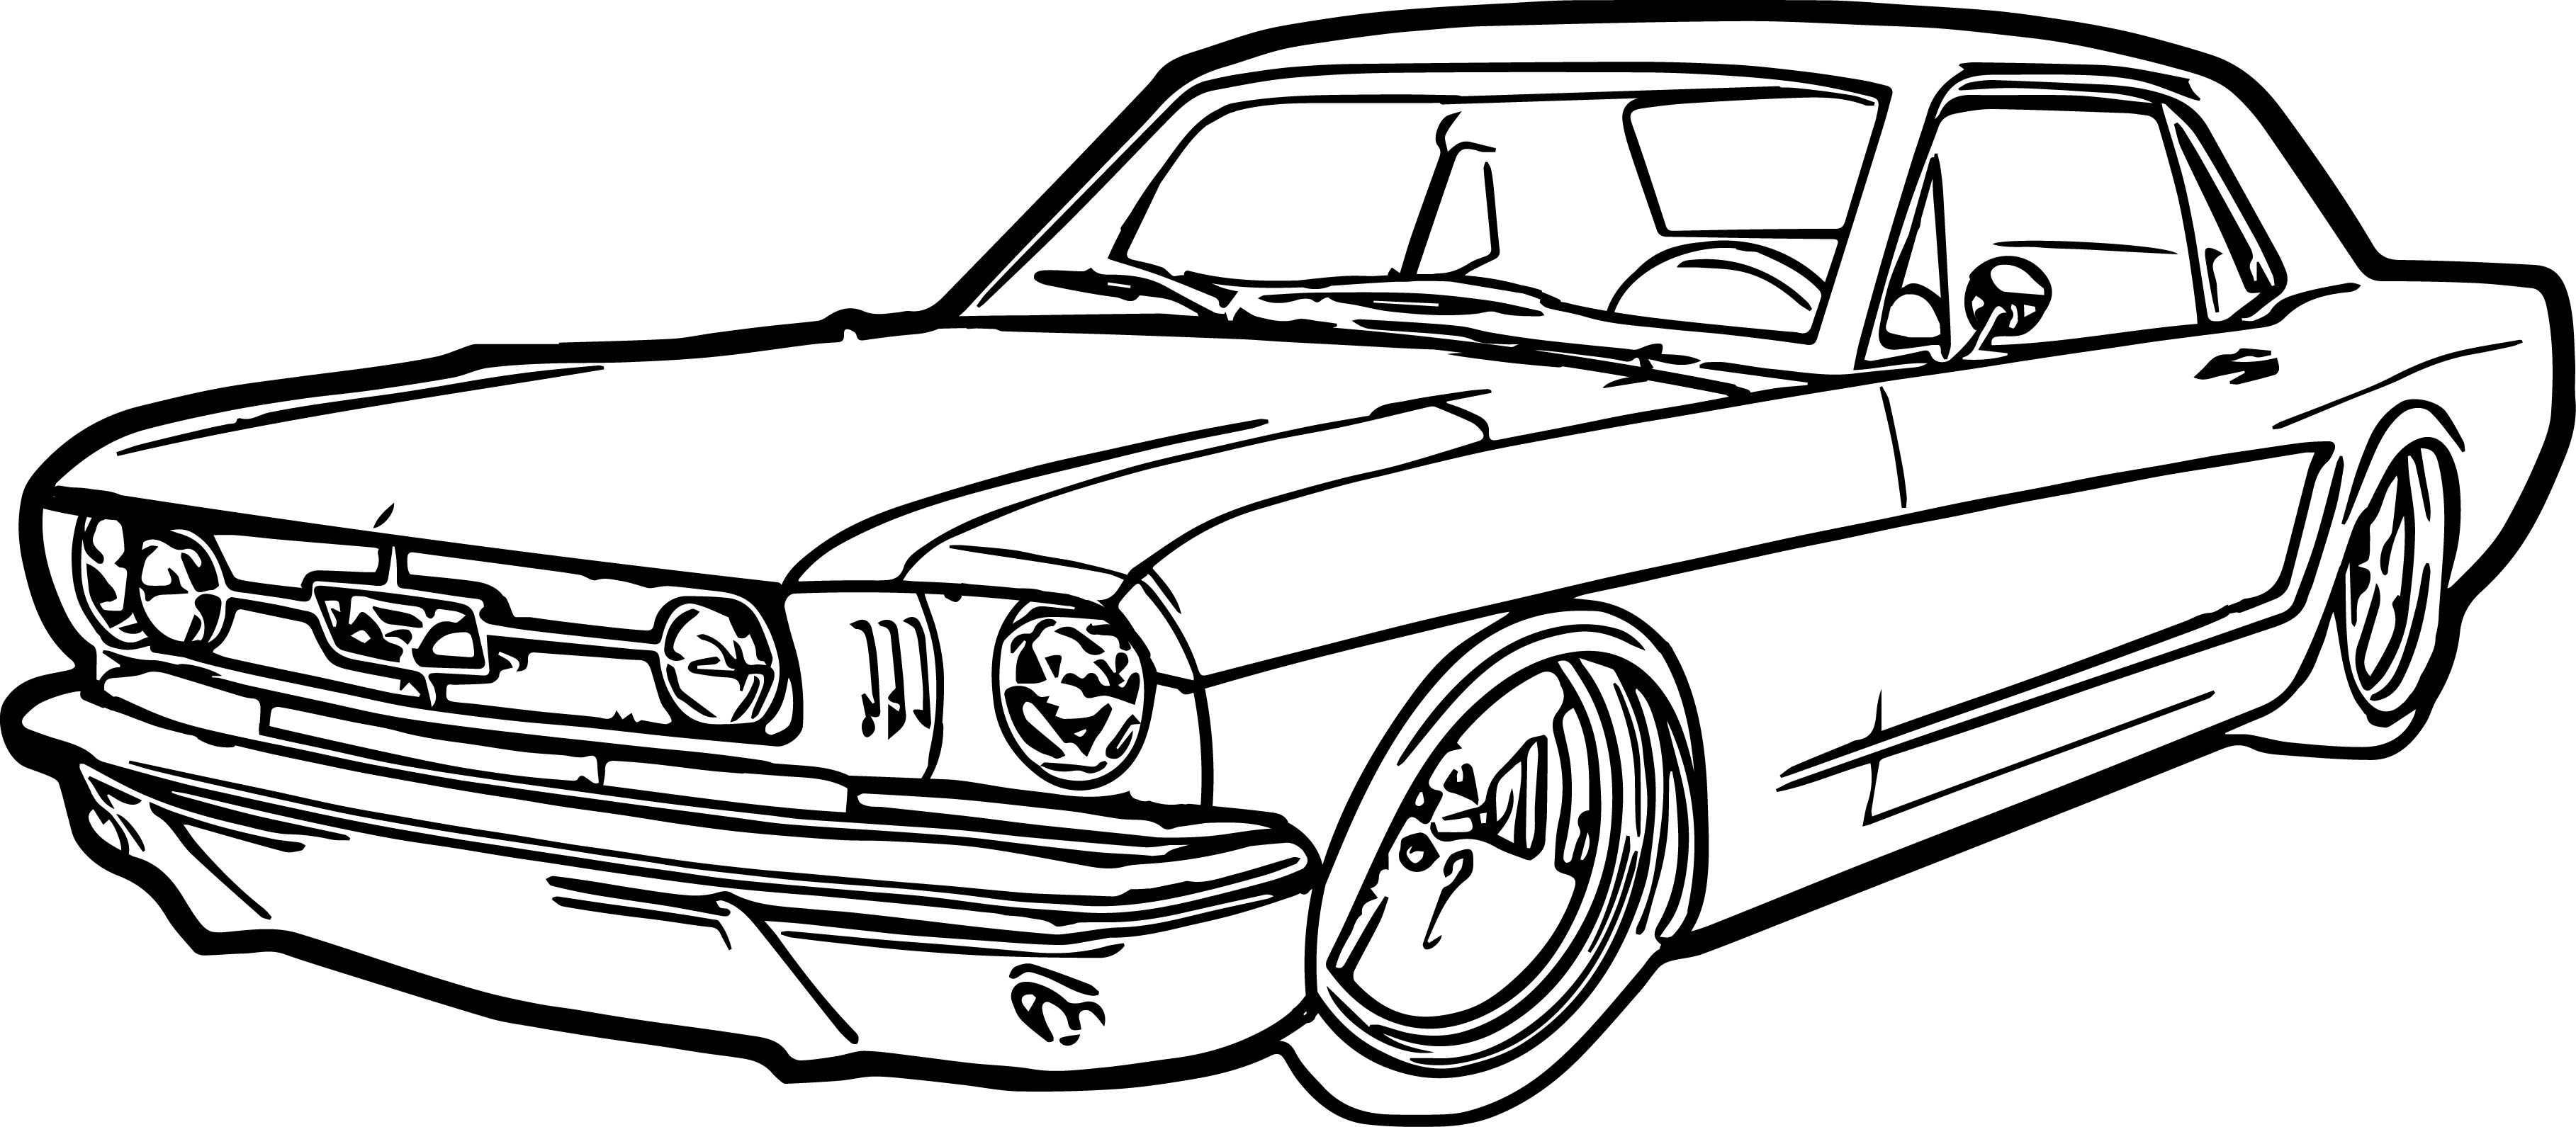 3635x1591 Super Car Chevrolet Camaro Coloring Page Freecolorngpages Co Best